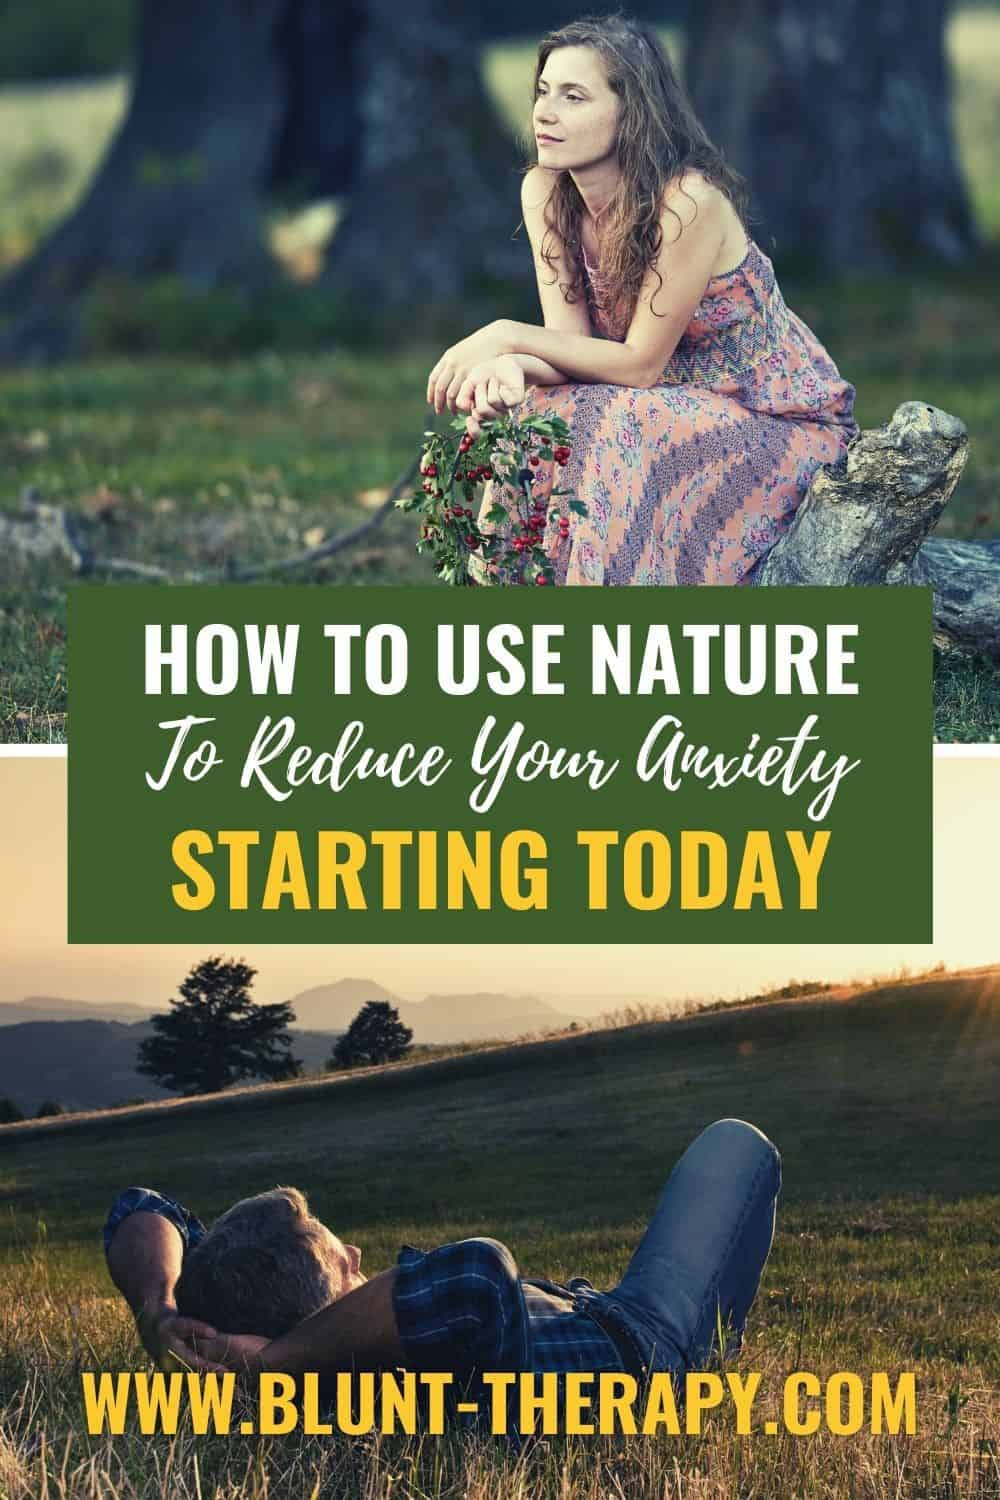 How To Use Nature To Reduce your Anxiety Starting Today